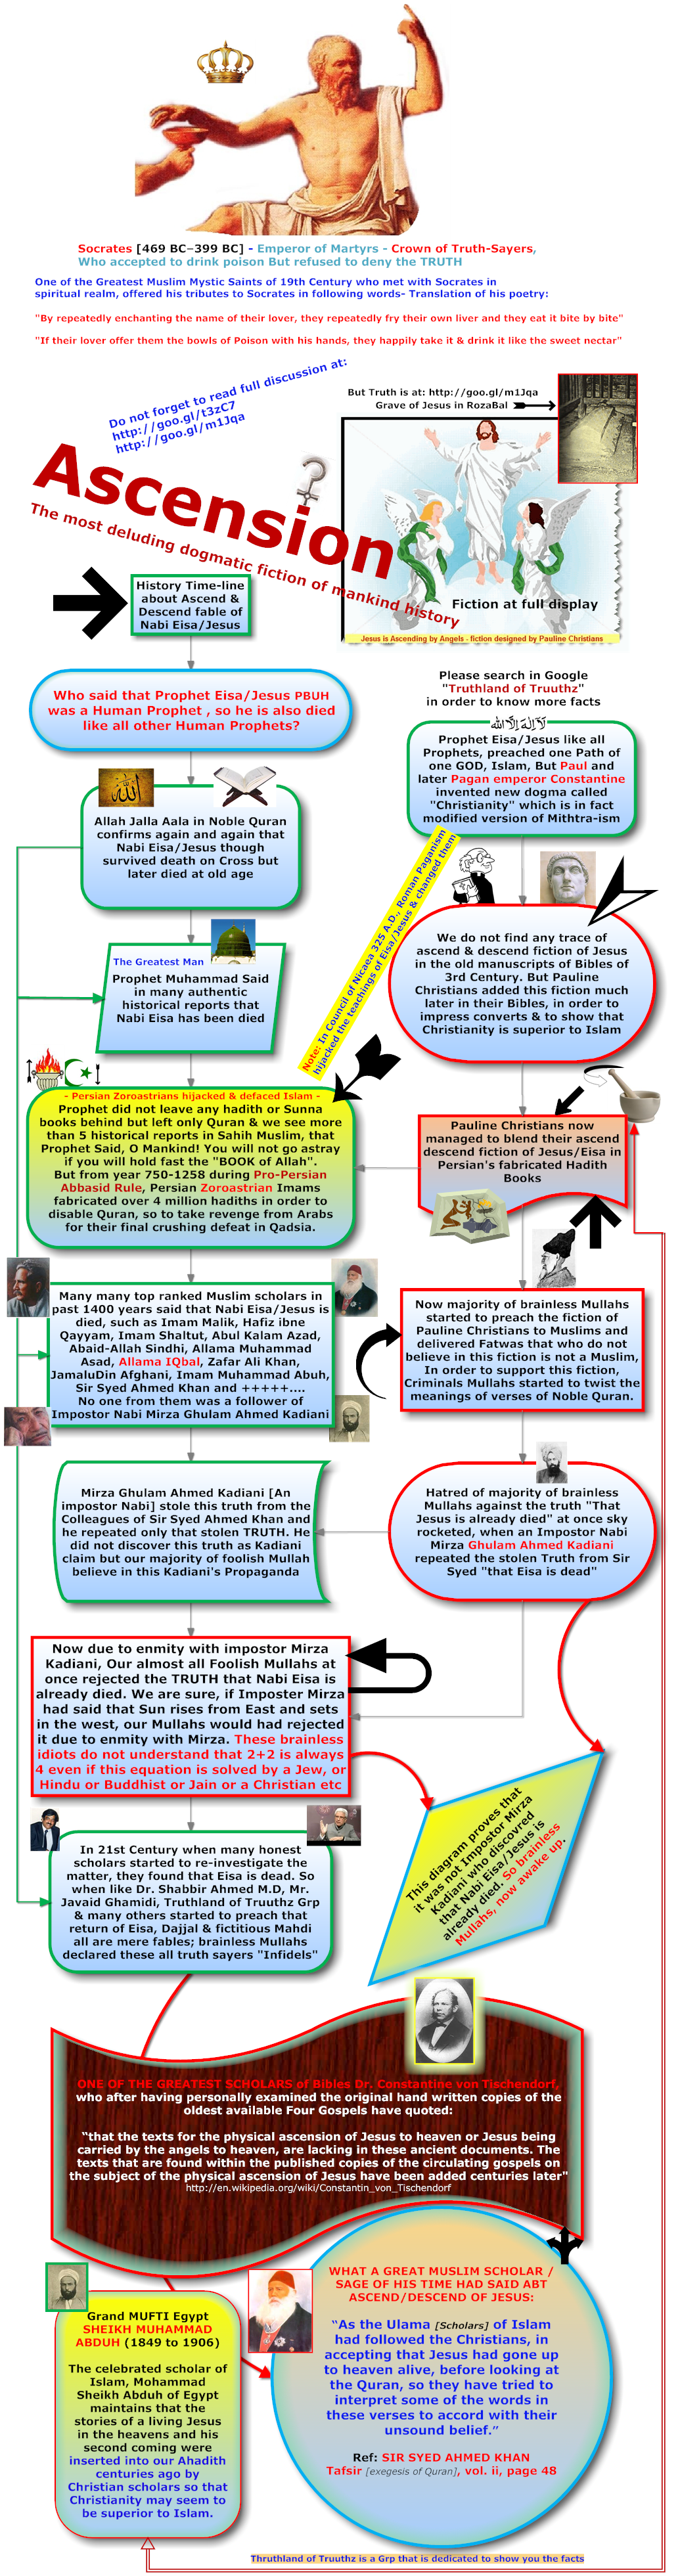 http://sites.google.com/site/reviversoftruth/some-so-called-hadiths-that-every-educated-muslim-on-this-planet-must-read/FlowDia2ndHistTimeline01.png